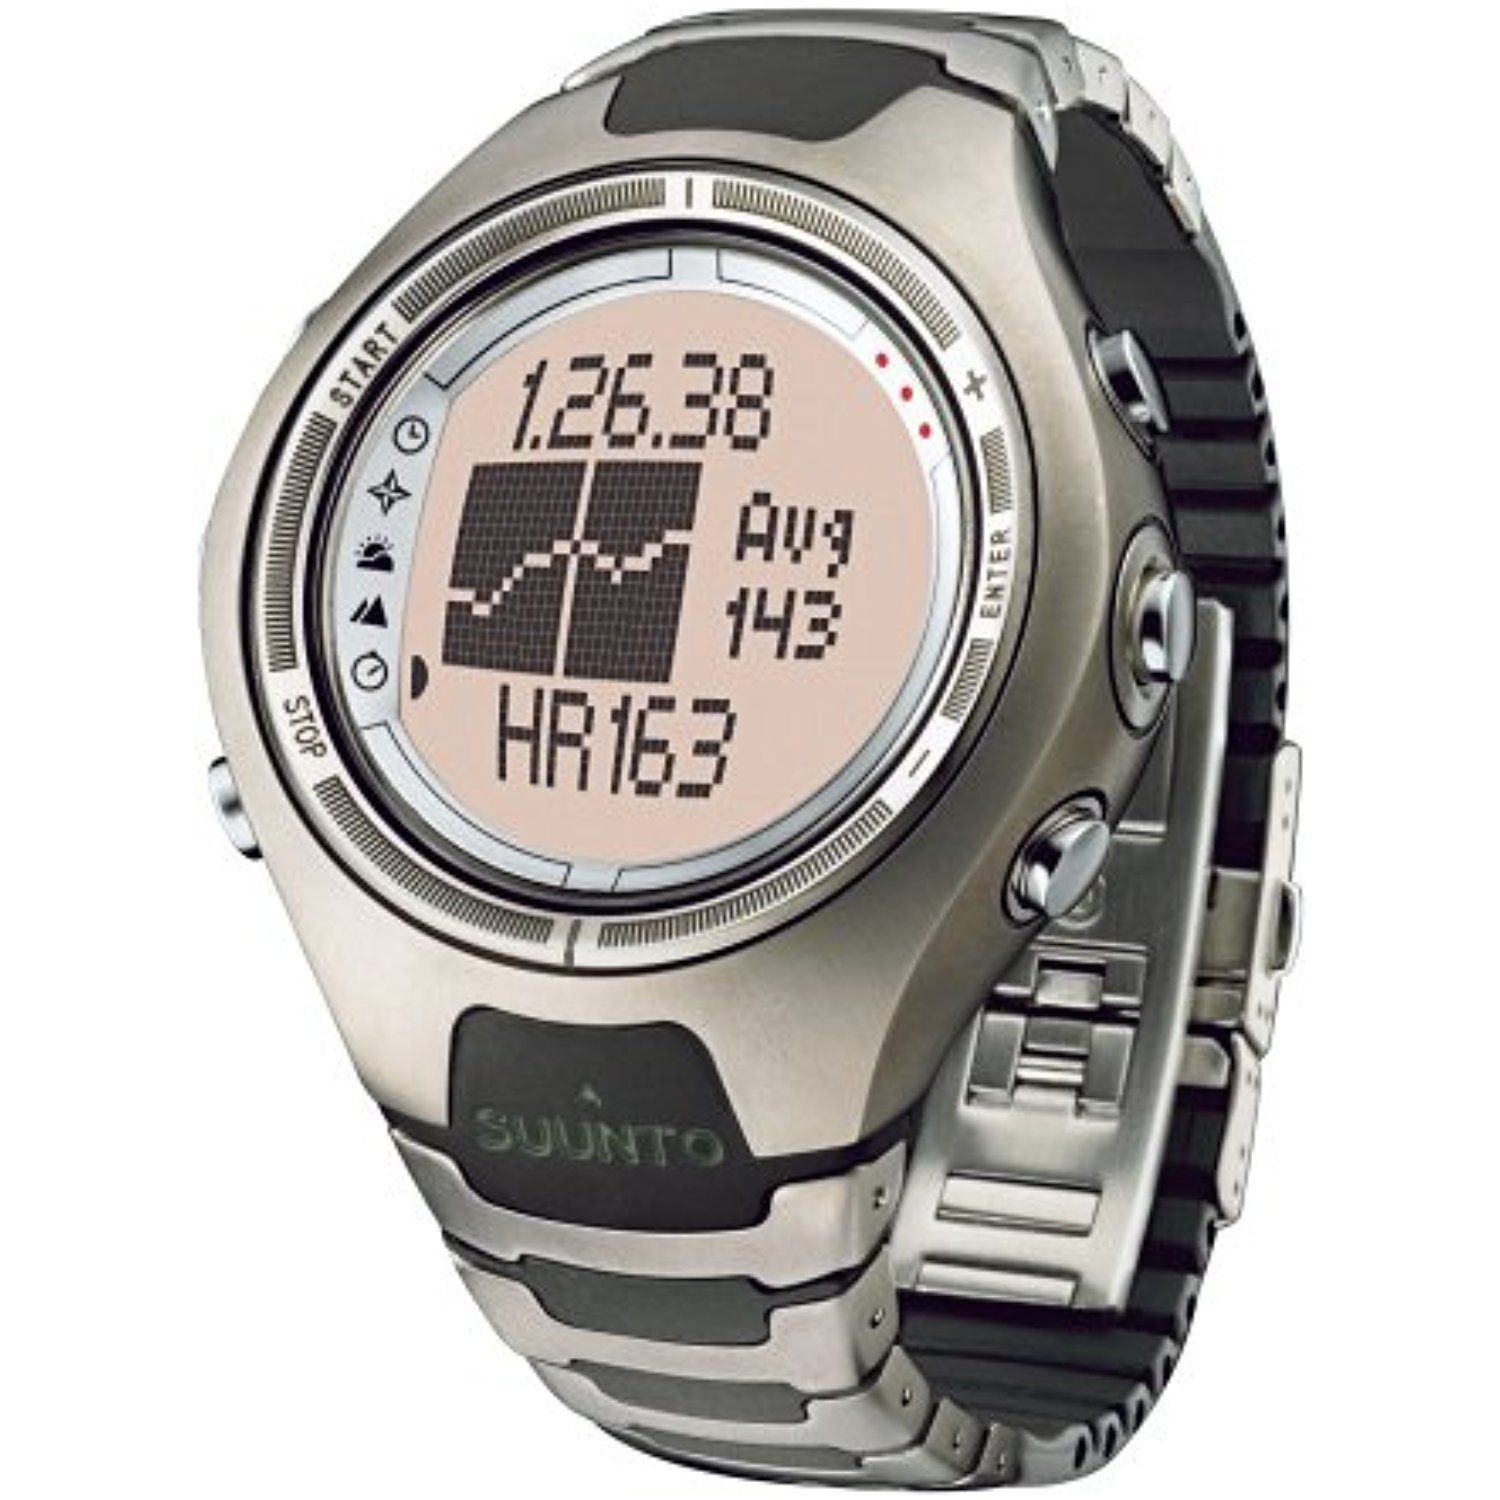 Suunto X6HRT Heart Rate WristTop Computer Watch with